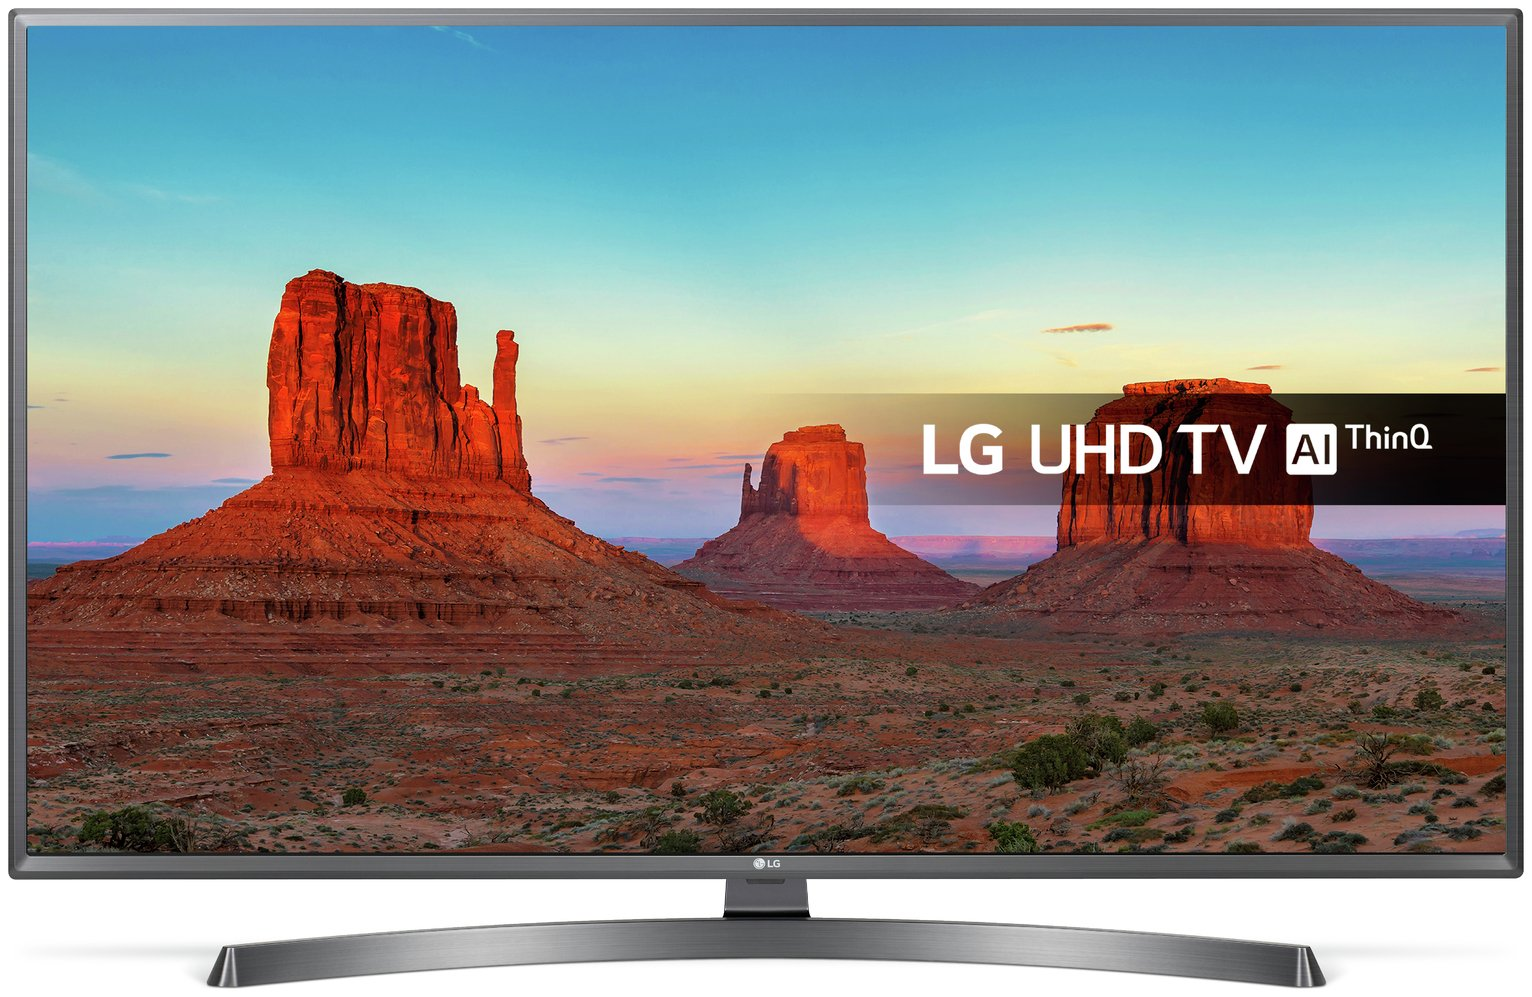 LG 50 Inch 50UK6750PLD Smart Ultra HD TV with HDR